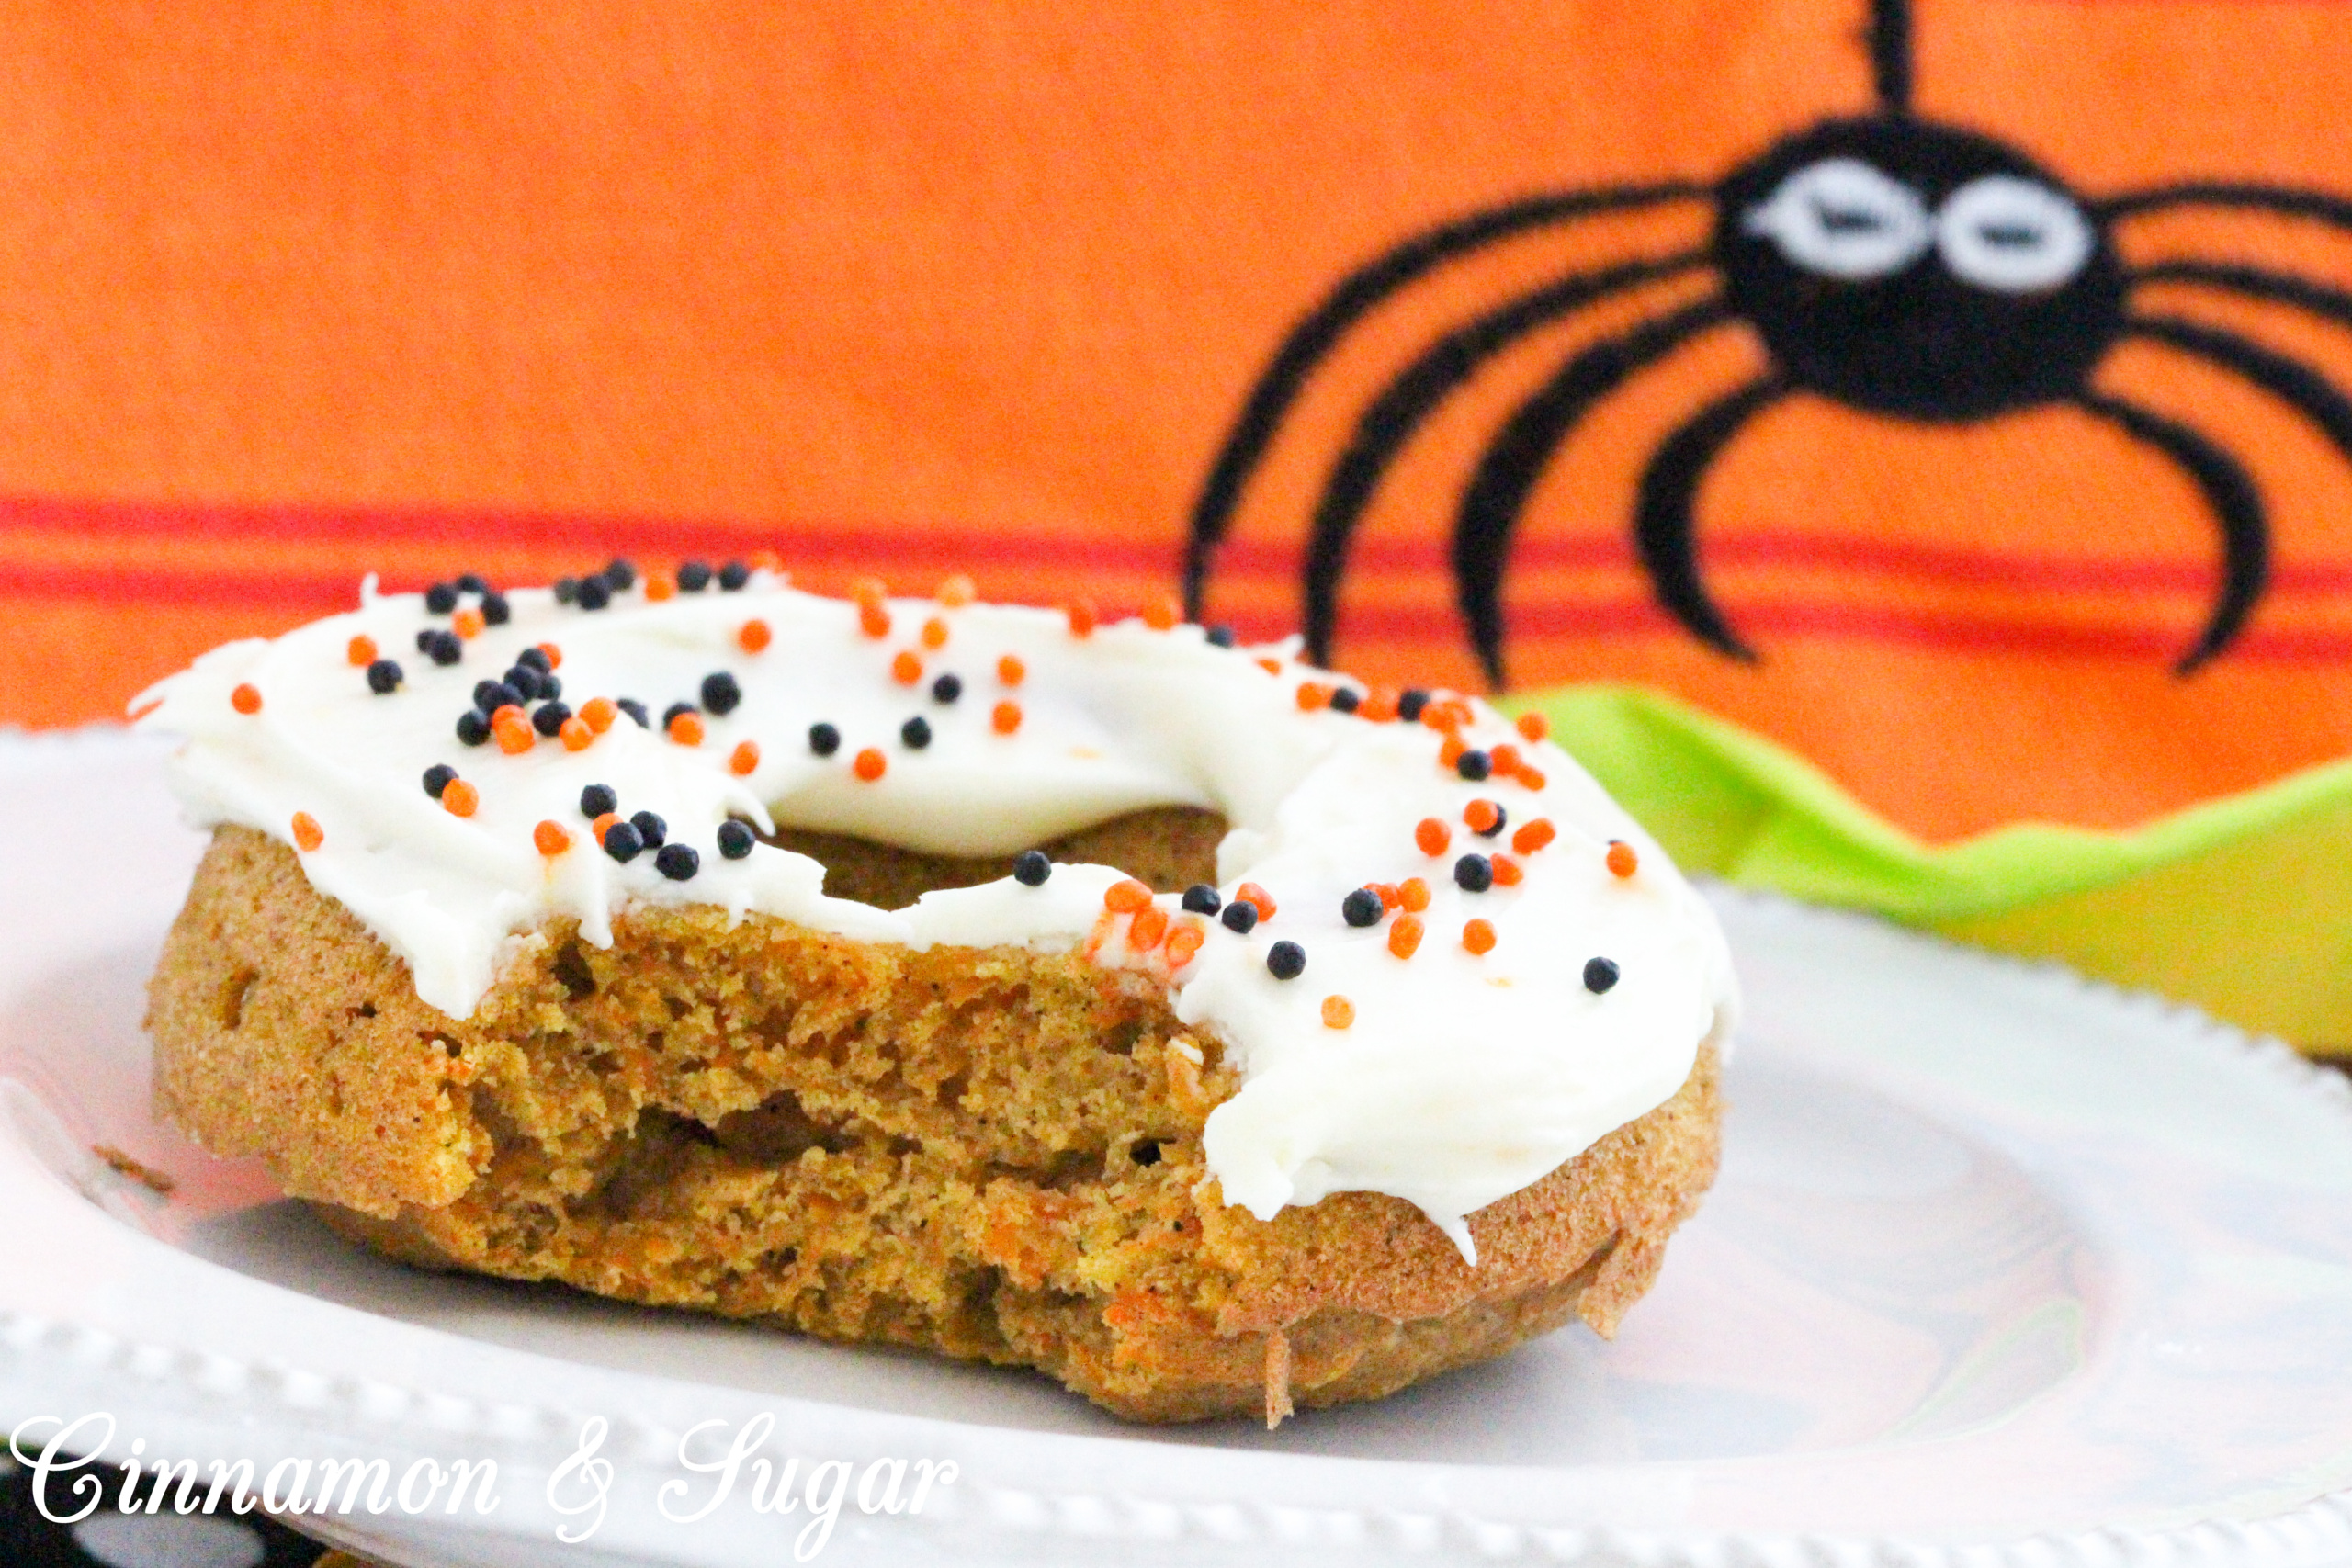 Scare-It Cake Donuts are a riff on Carrot Cake! Filled with warm, autumn spices and a generous portion of grated carrots to keep them extra moist, these donuts are a treat for all gouls and goblins! Recipe shared with permission granted by Ginger Bolton, author of BOSTON SCREAM MURDER.